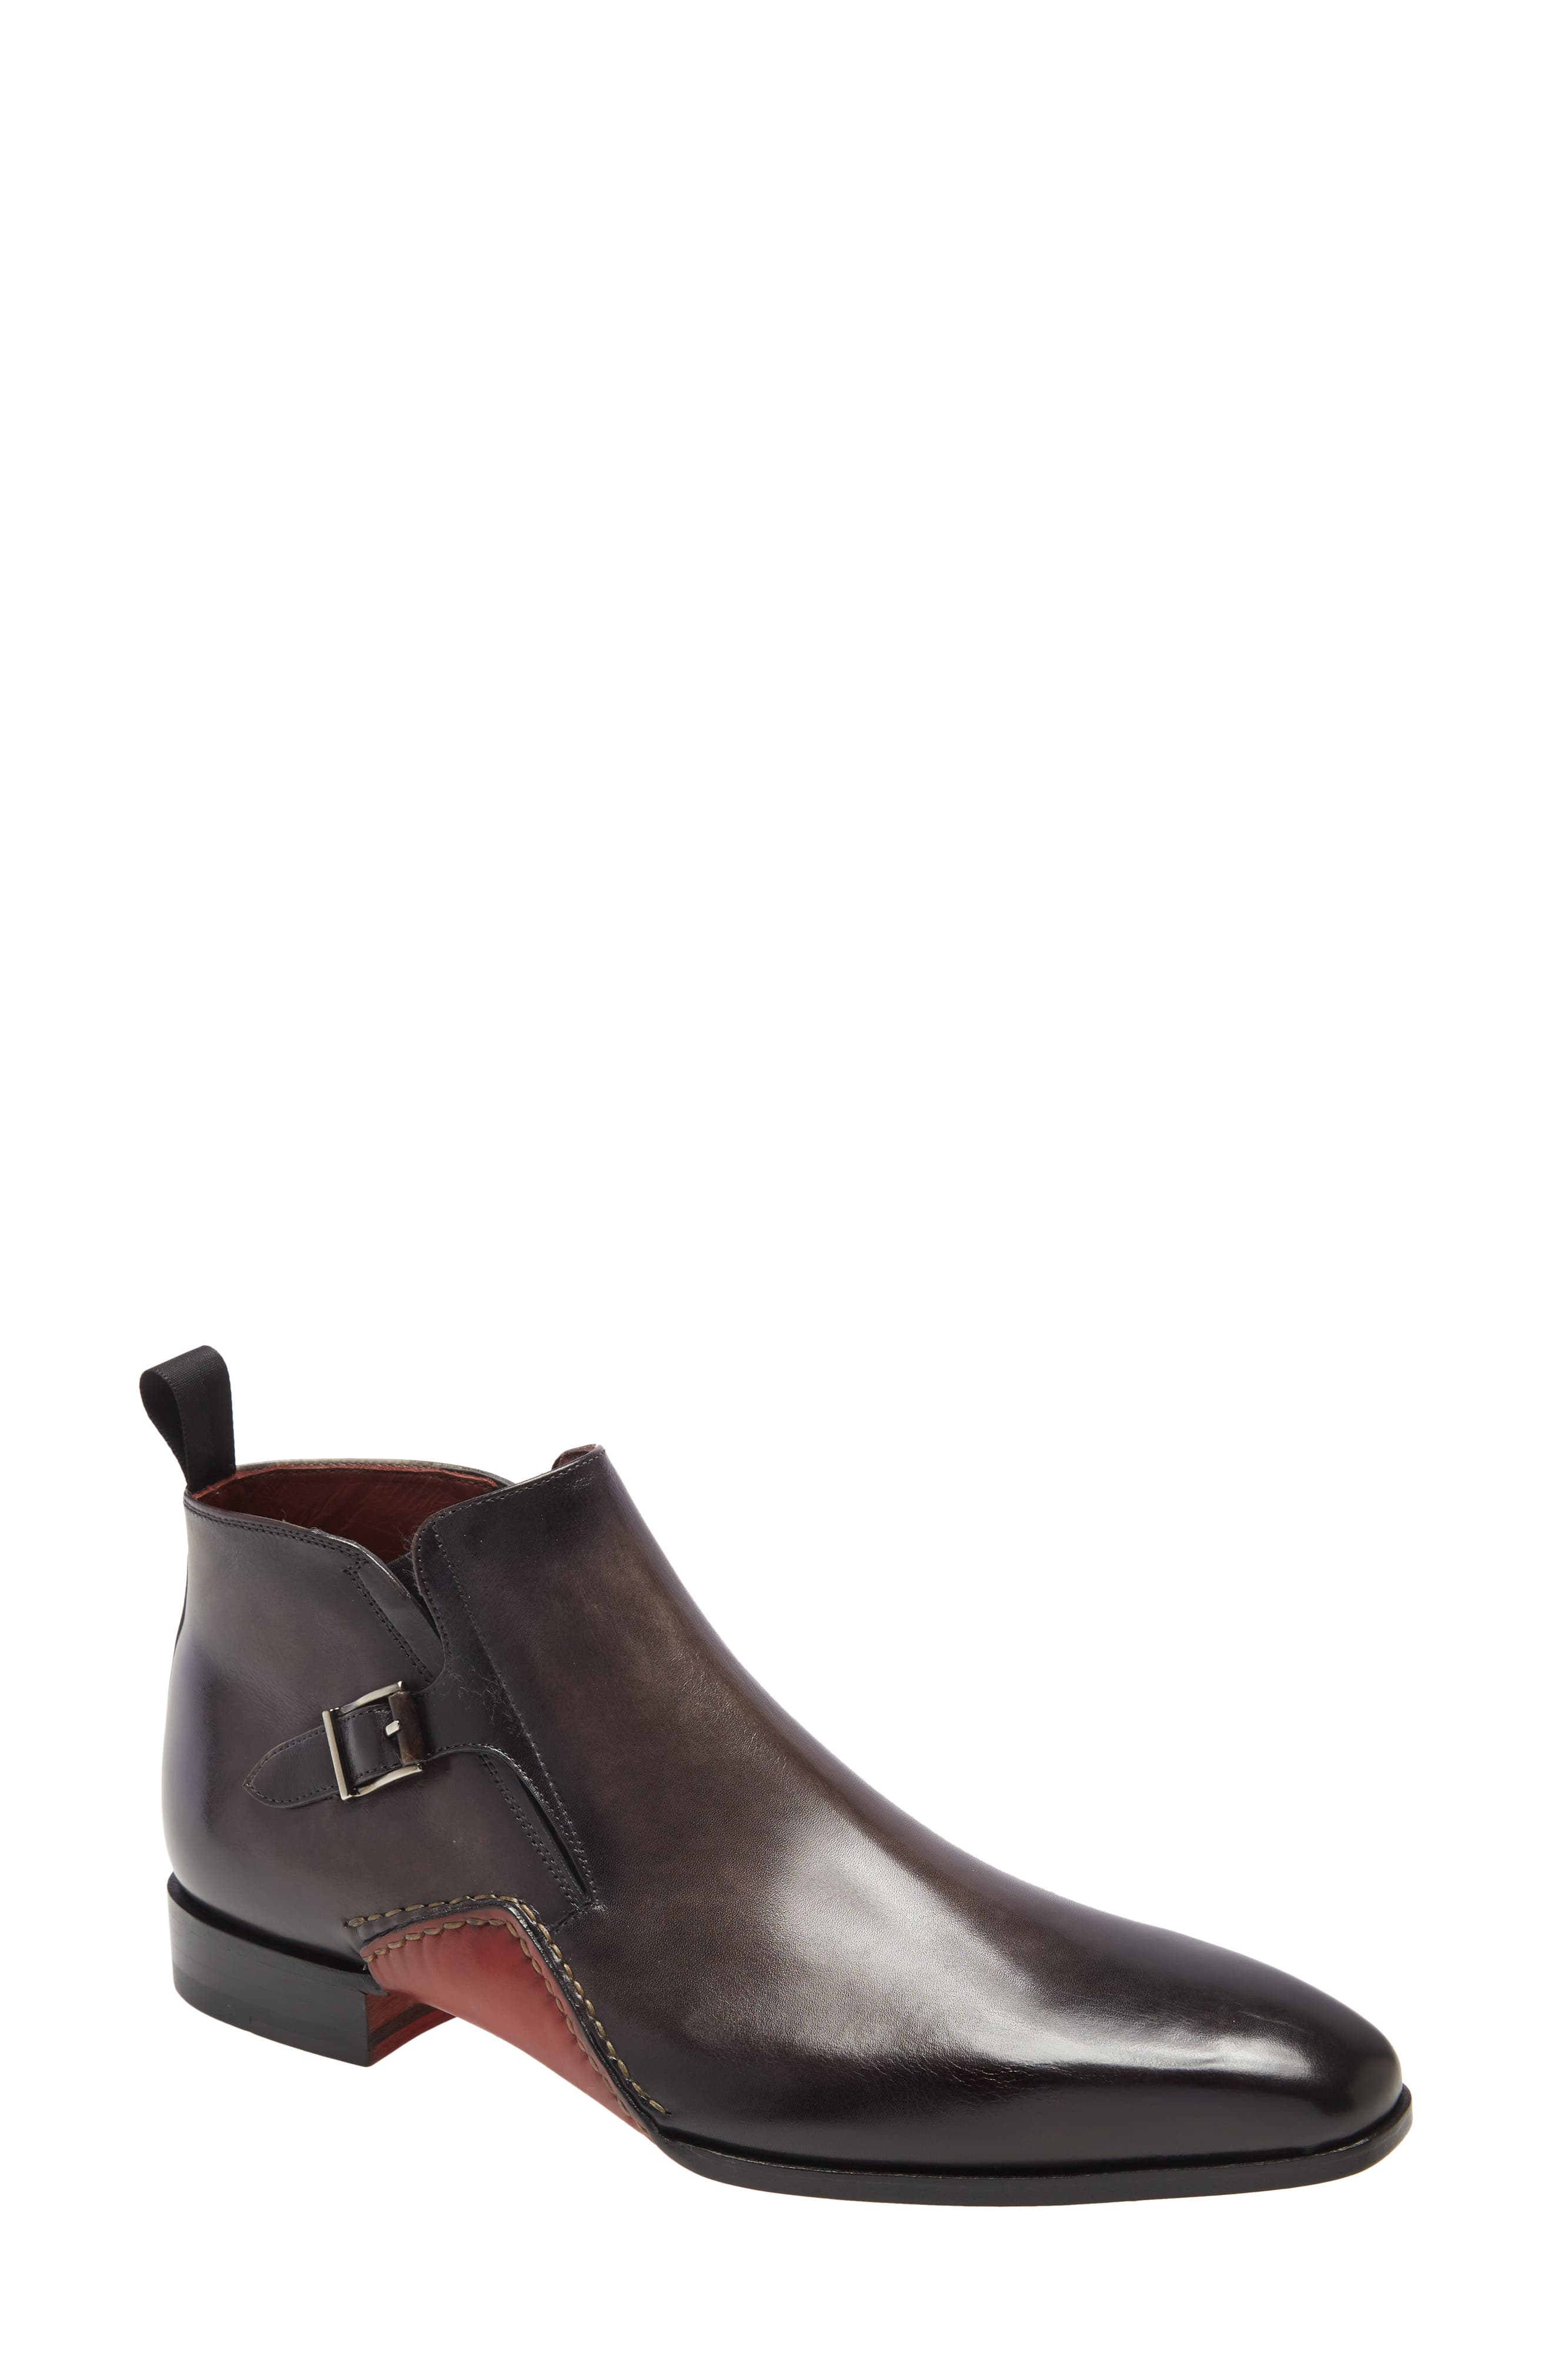 A full leather lining ensures breathable comfort in a handsome Spanish-made Chelsea boot built from rich Italian leather. Style Name: Magnanni Lucero Mid Chelsea Boot (Men). Style Number: 6068423. Available in stores.